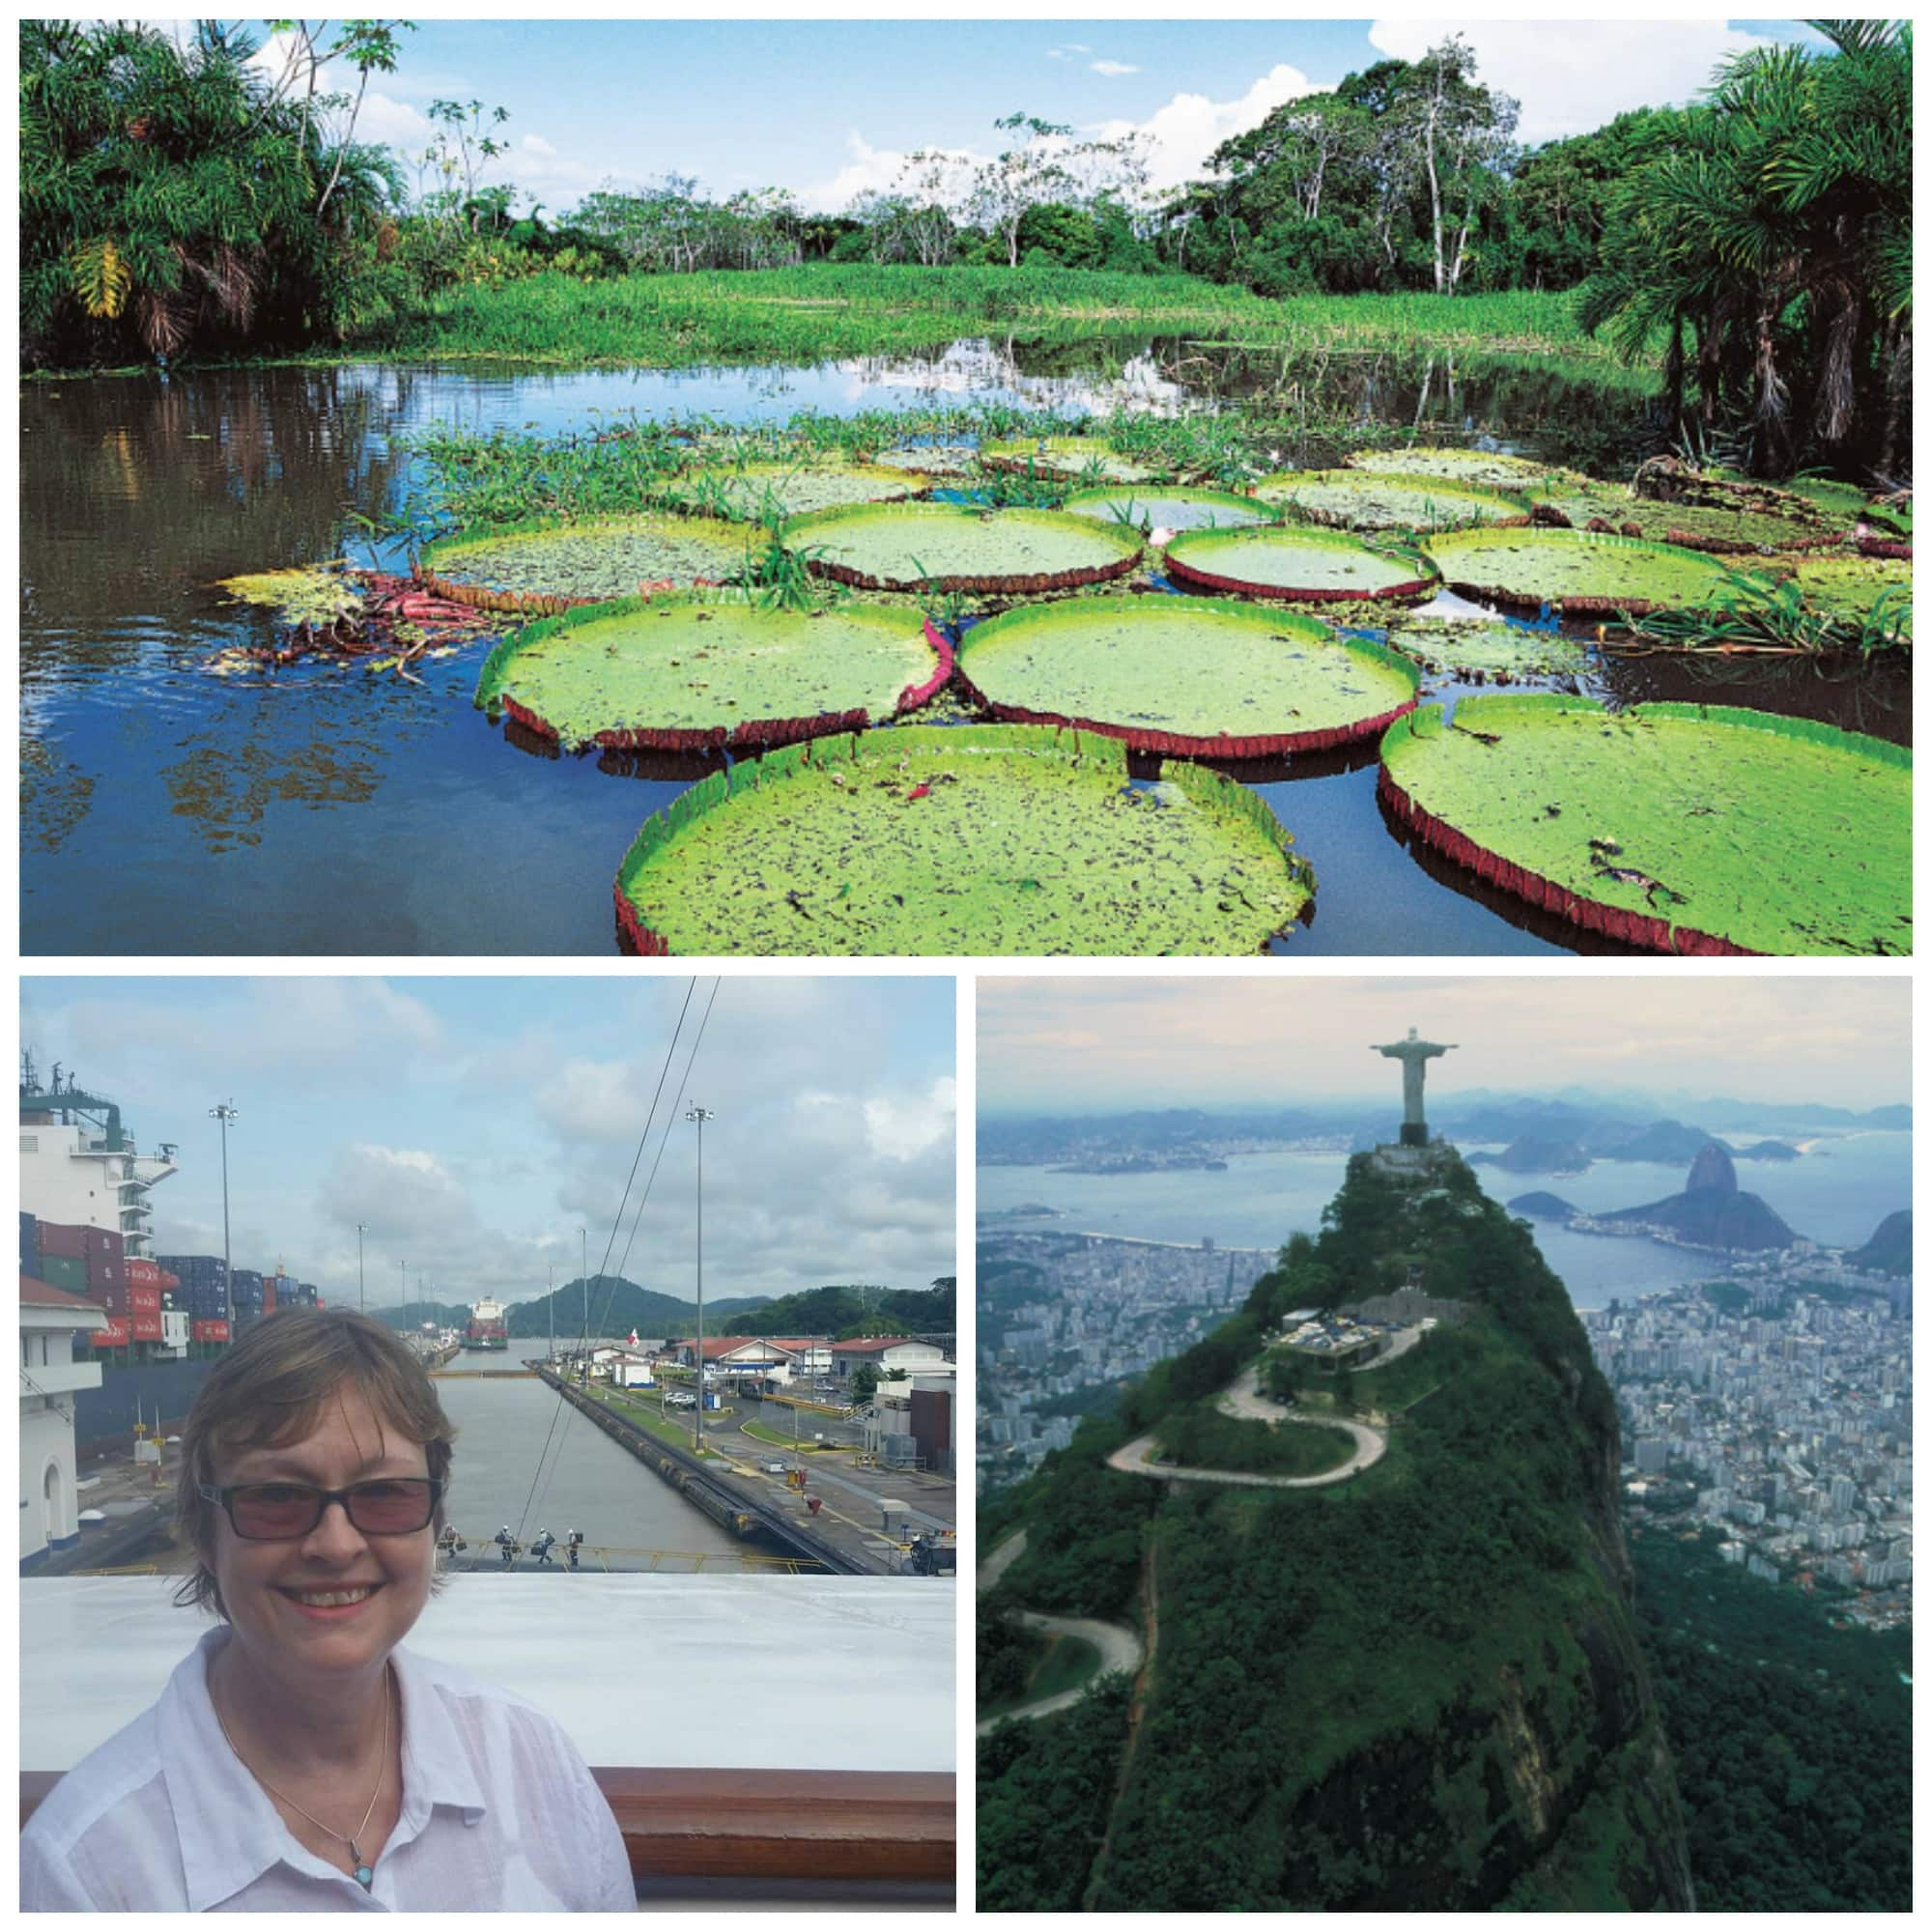 The Amazon, Rio's Corcovado and the Panama Canal (with guest Cris Senseman) are a few highlights on some South America cruises.